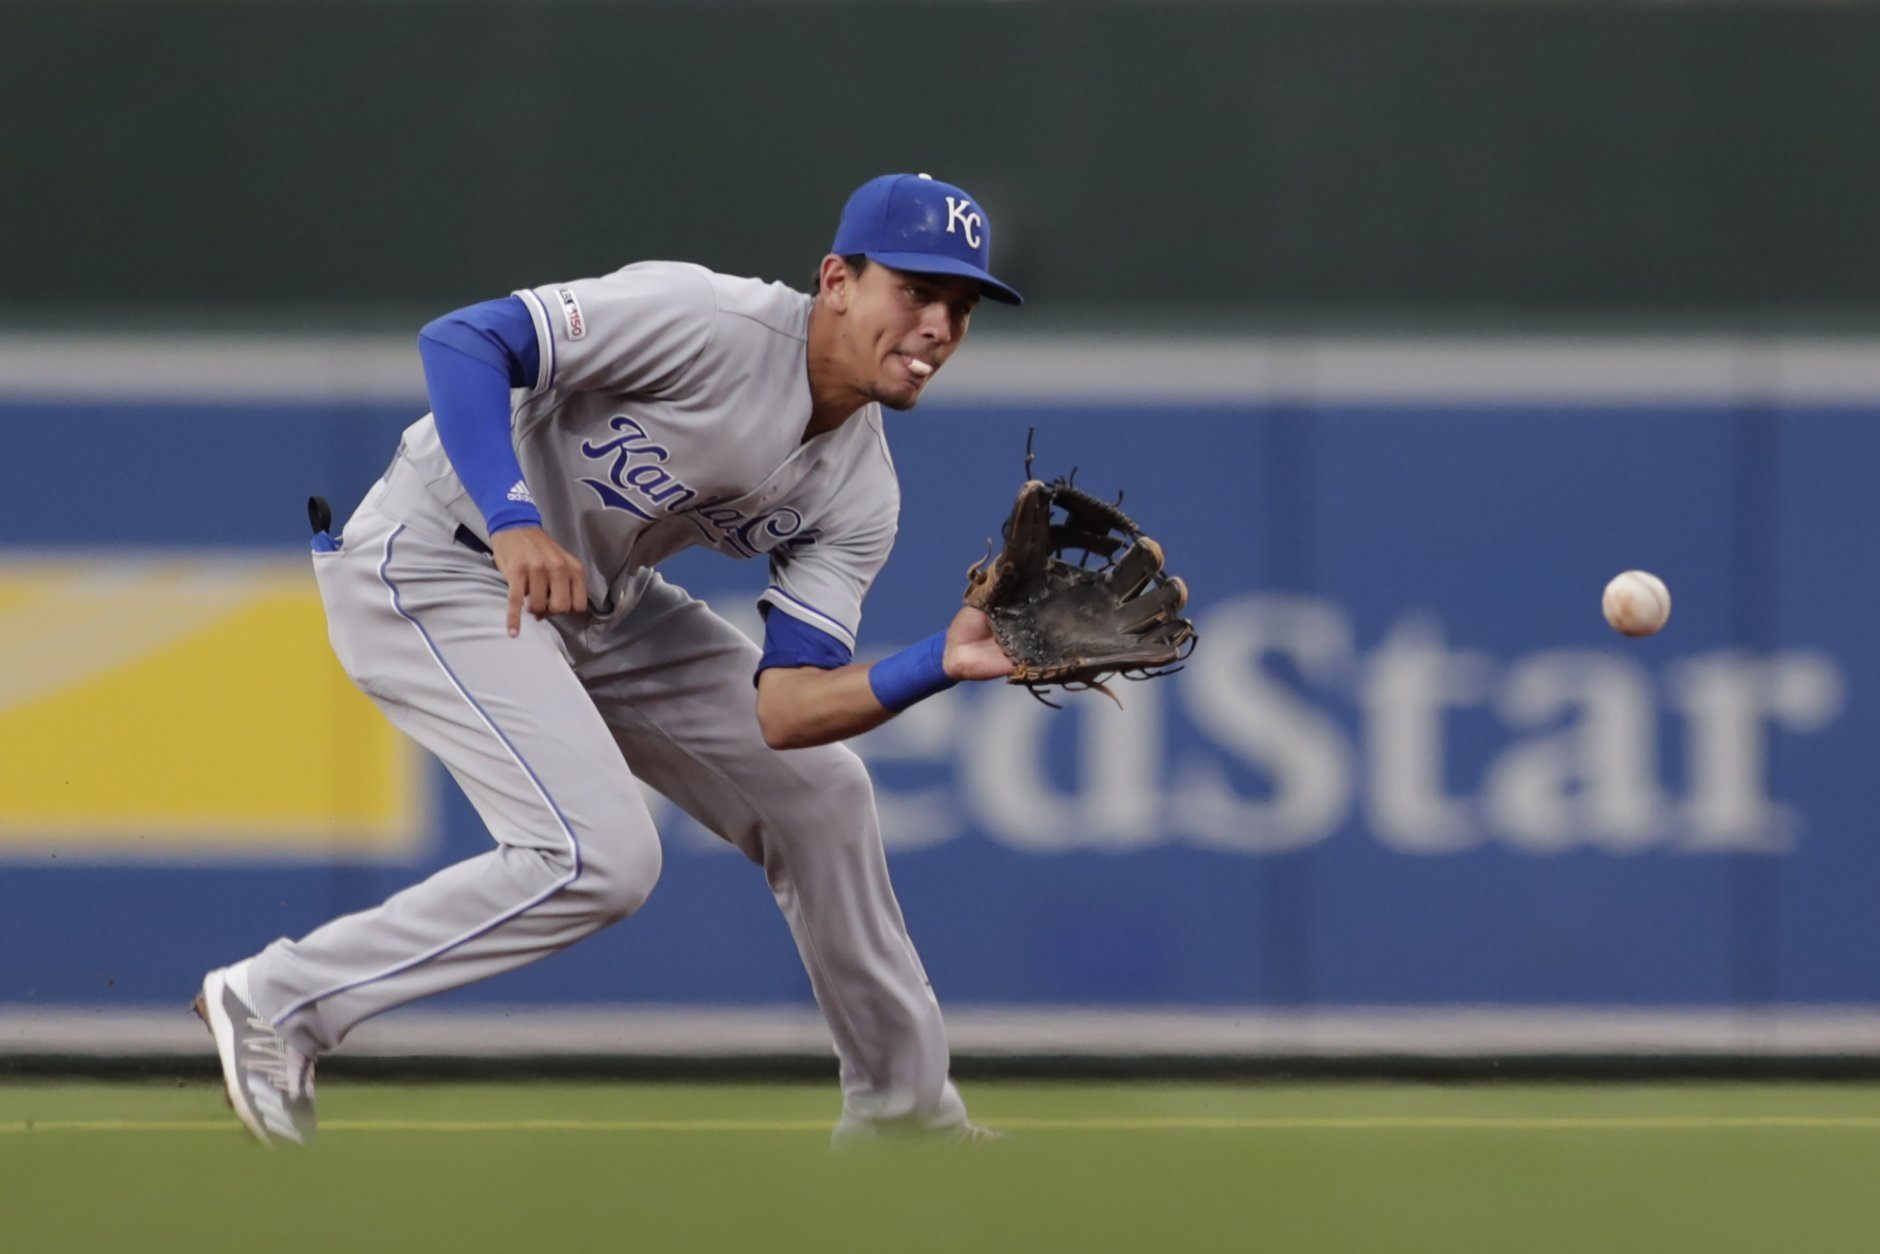 Kansas City Royals second baseman Nicky Lopez fields a ground ball by a Baltimore Orioles batter during the first inning of a baseball game, Monday, Aug. 19, 2019, in Baltimore. (AP Photo/Julio Cortez)